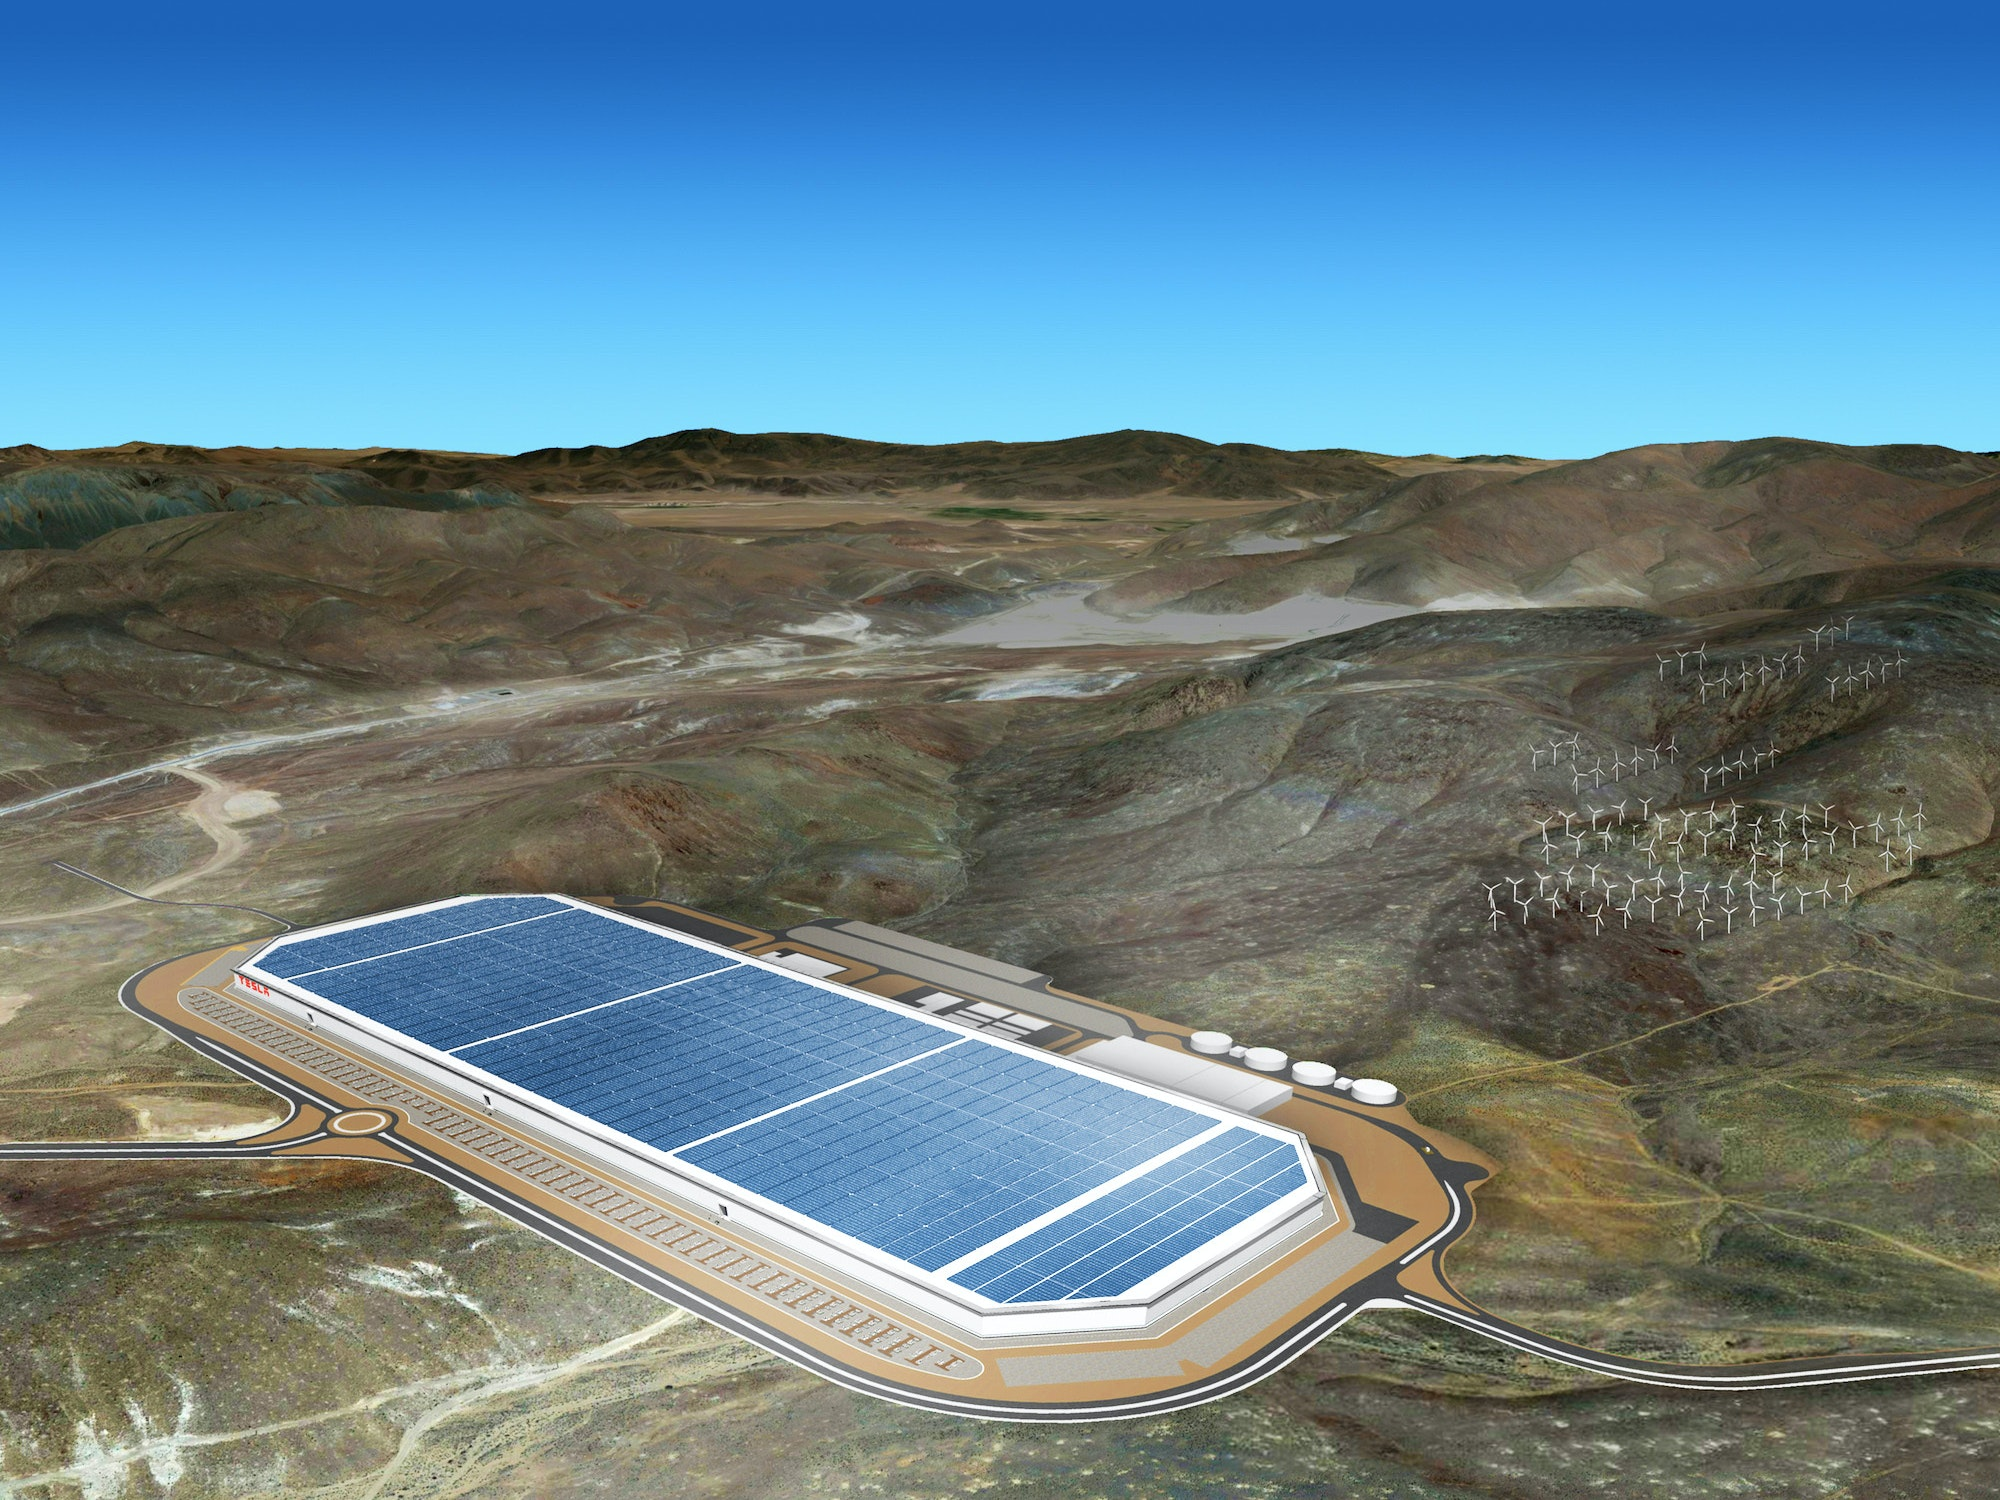 When It Comes to Tesla's Gigafactory, Nevada Officials Can't Keep a Poker Face